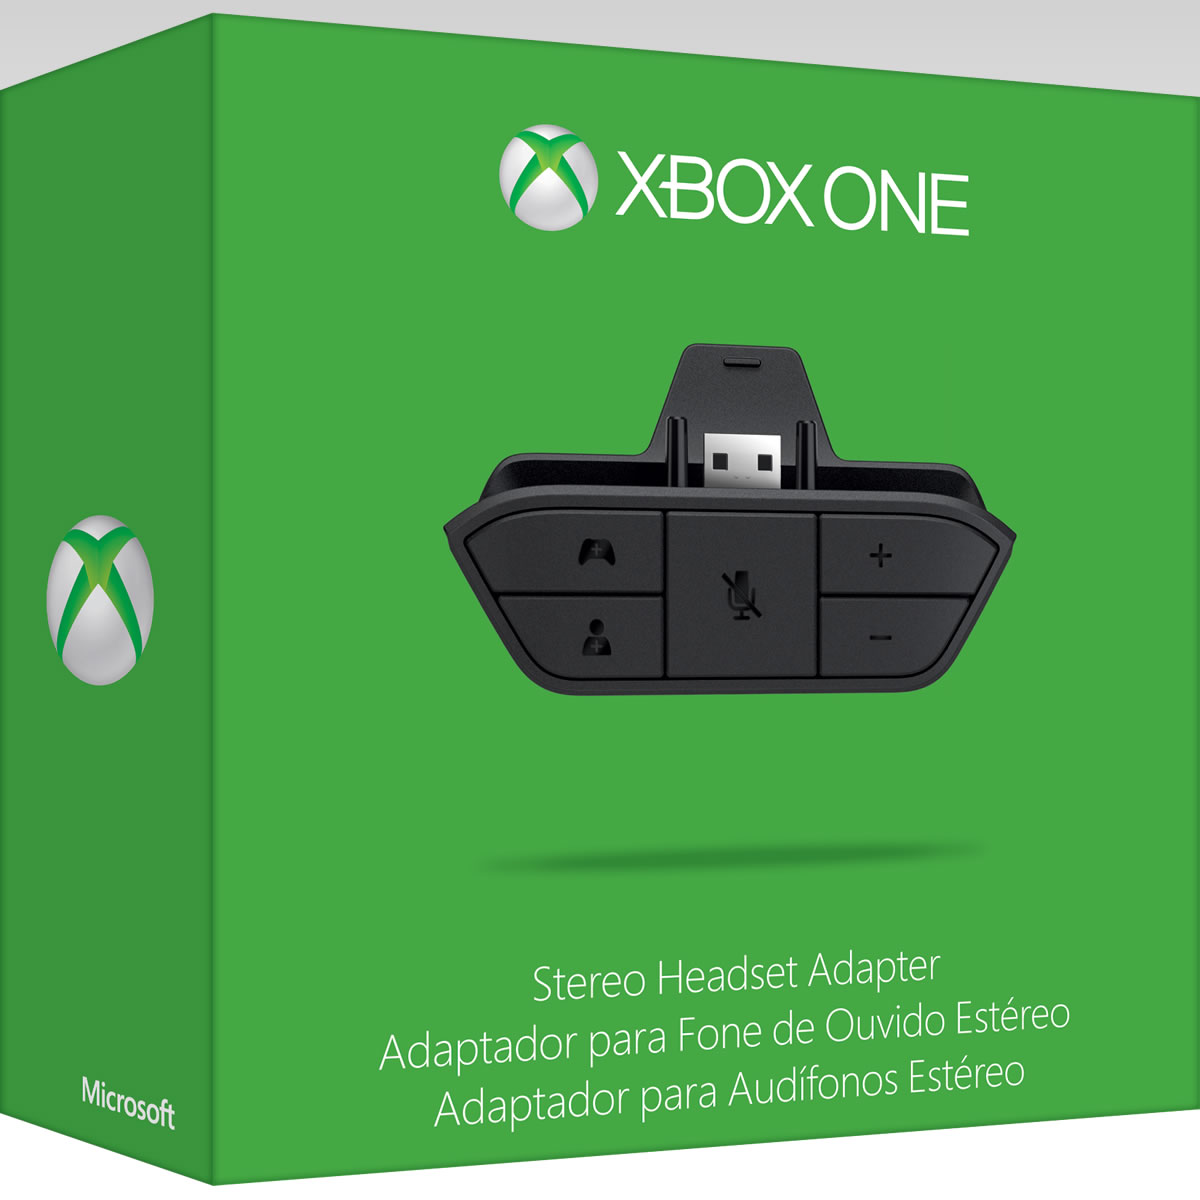 MICROSOFT OFFICIAL XBOX ONE STEREO HEADSET ADAPTER - MICROSOFT �������� XBOX ONE ������������ ������������� ���������� (XBOX ONE)